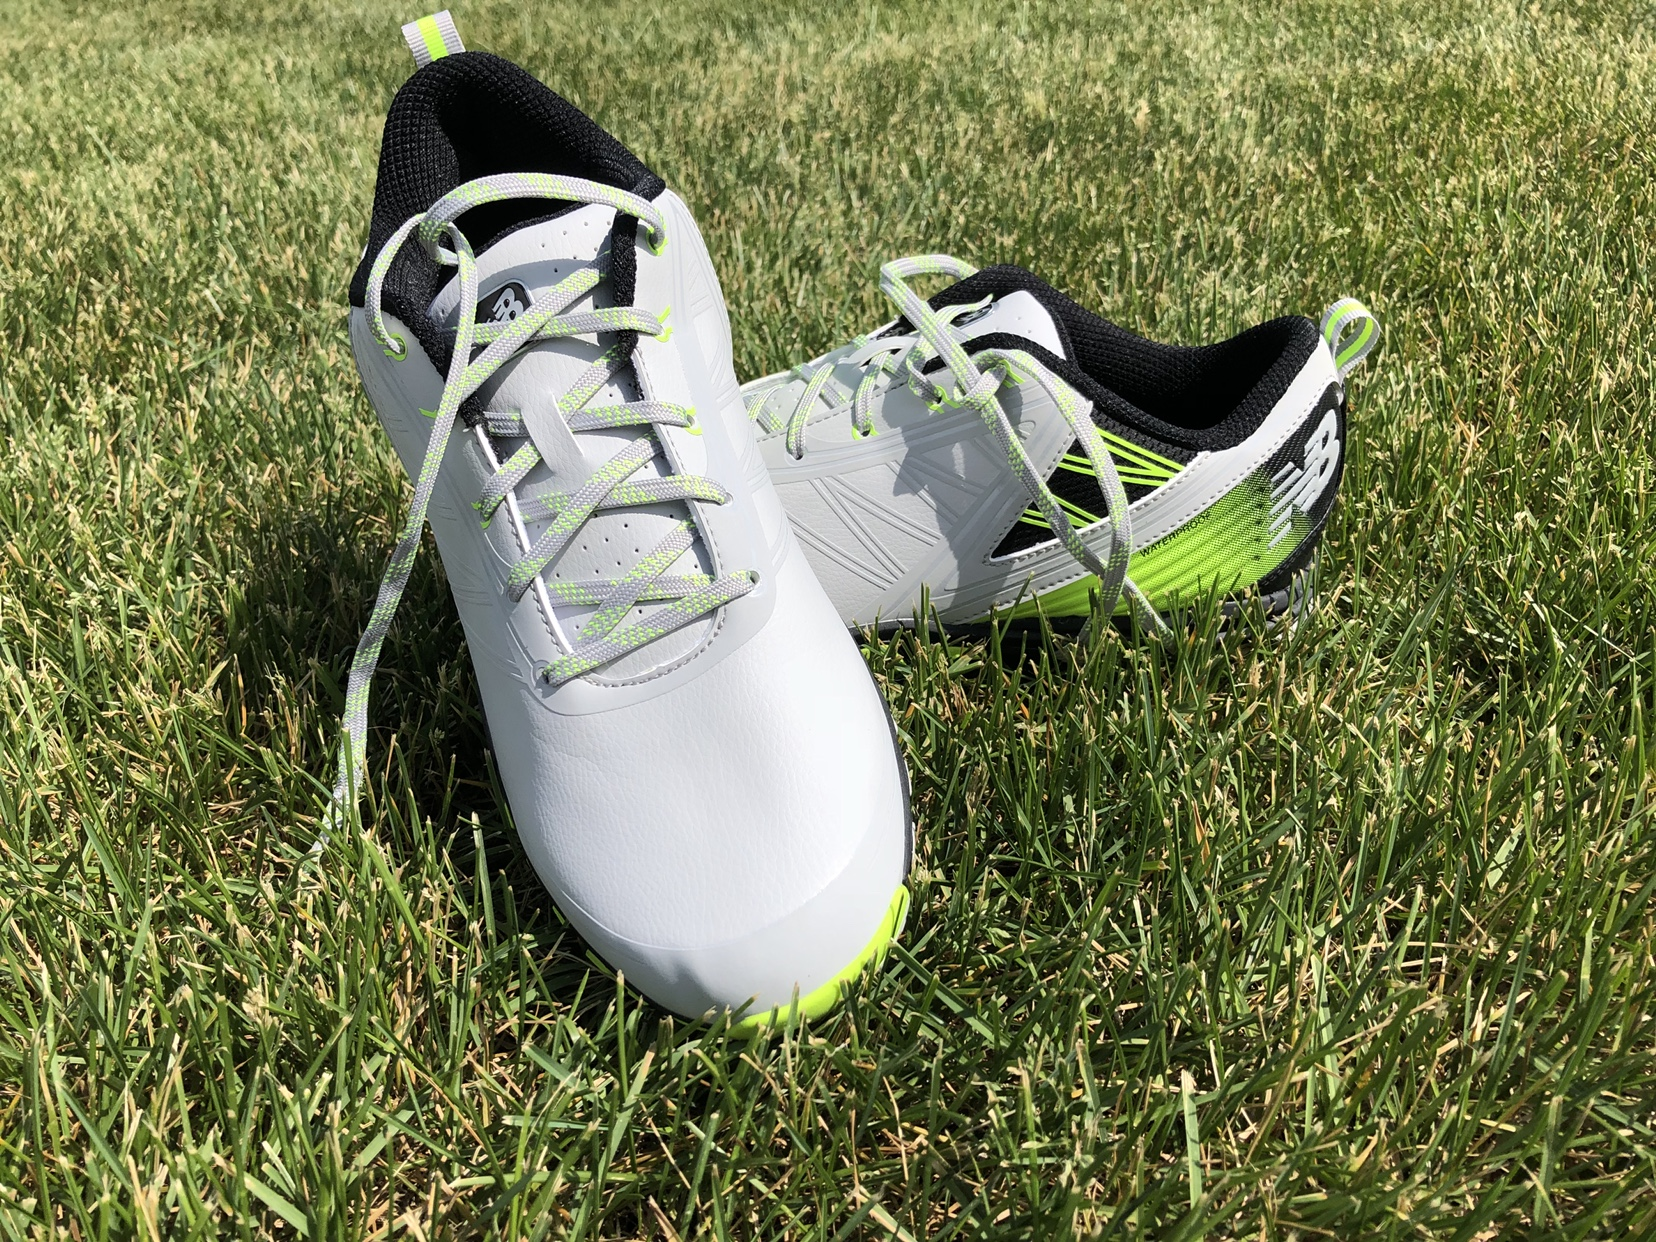 cd4057891565a I went and compared how heavy they feel to a couple other spikeless shoes I  own and these are very similar if not even lighter than those other brands.